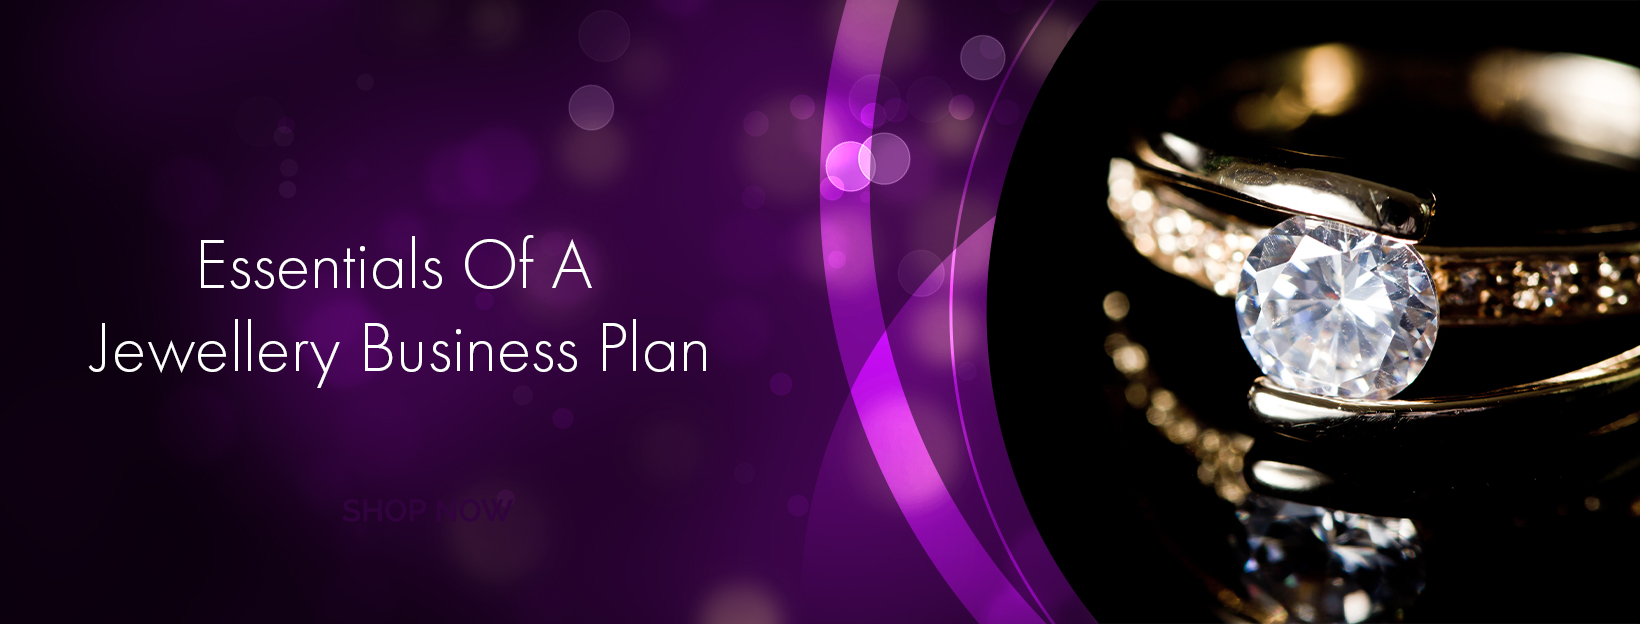 Essentials Of A Jewellery Business Plan